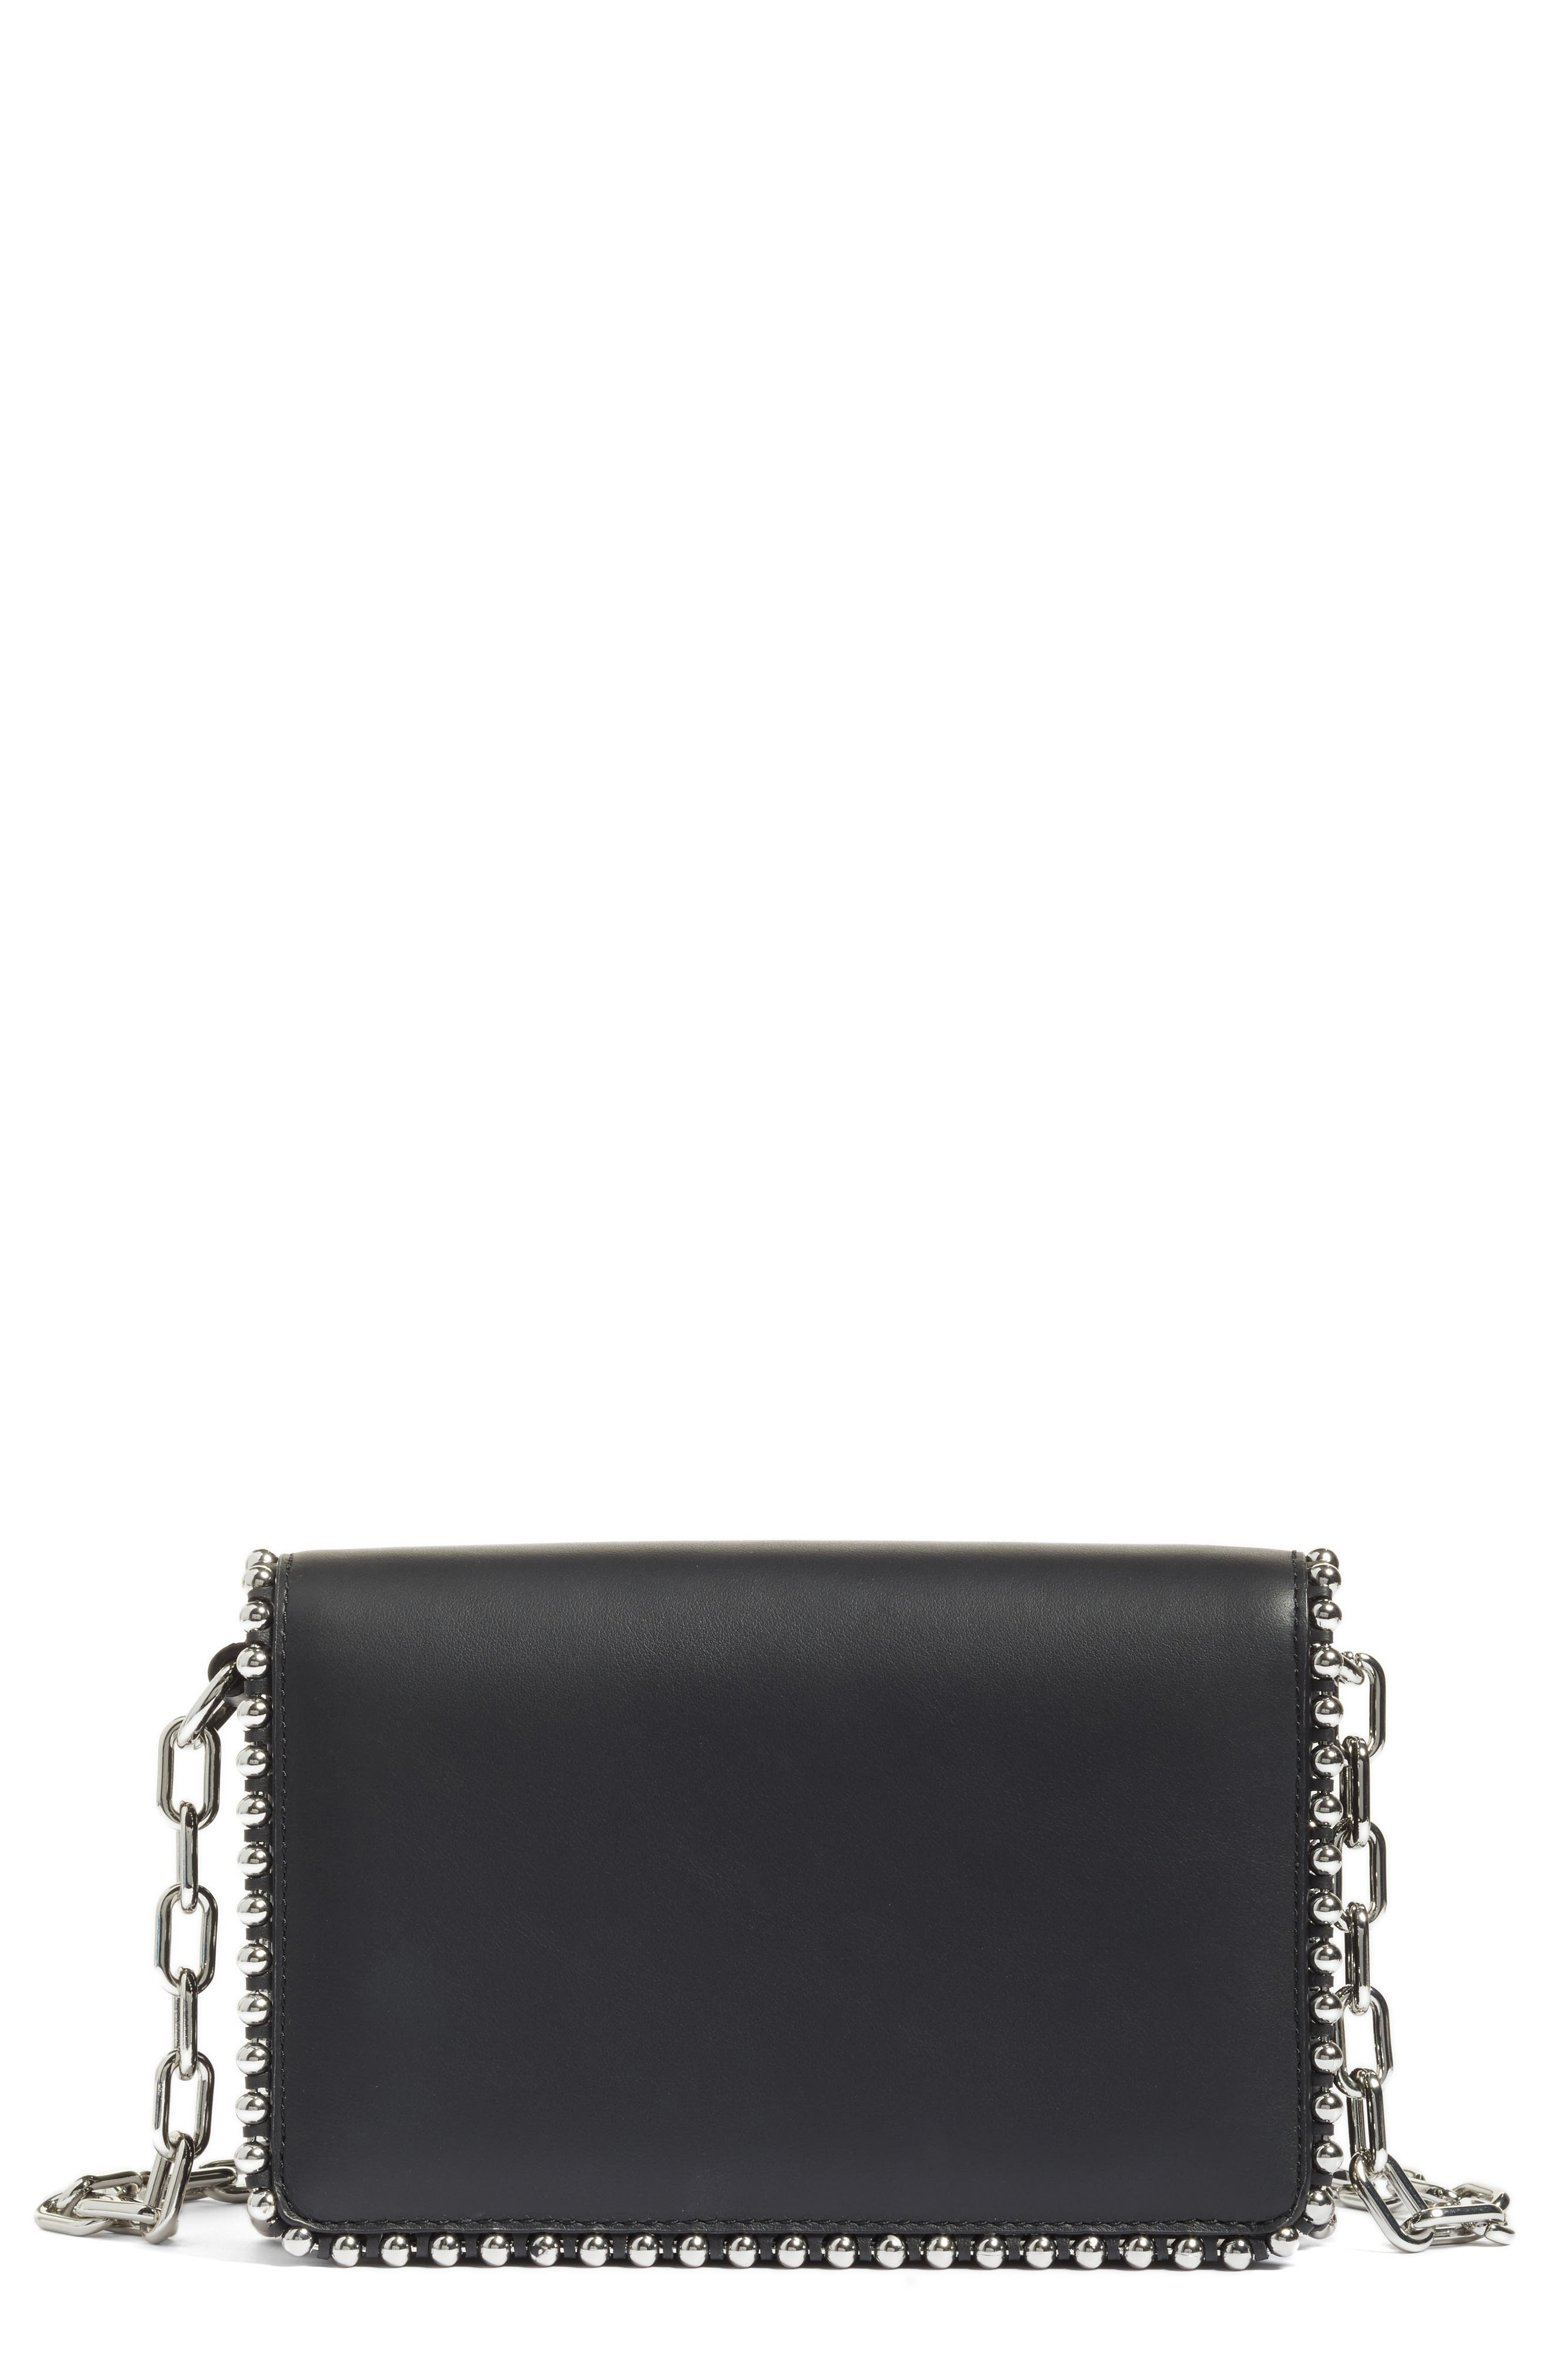 Alexander Wang Biker Studded Leather Crossbody Bag